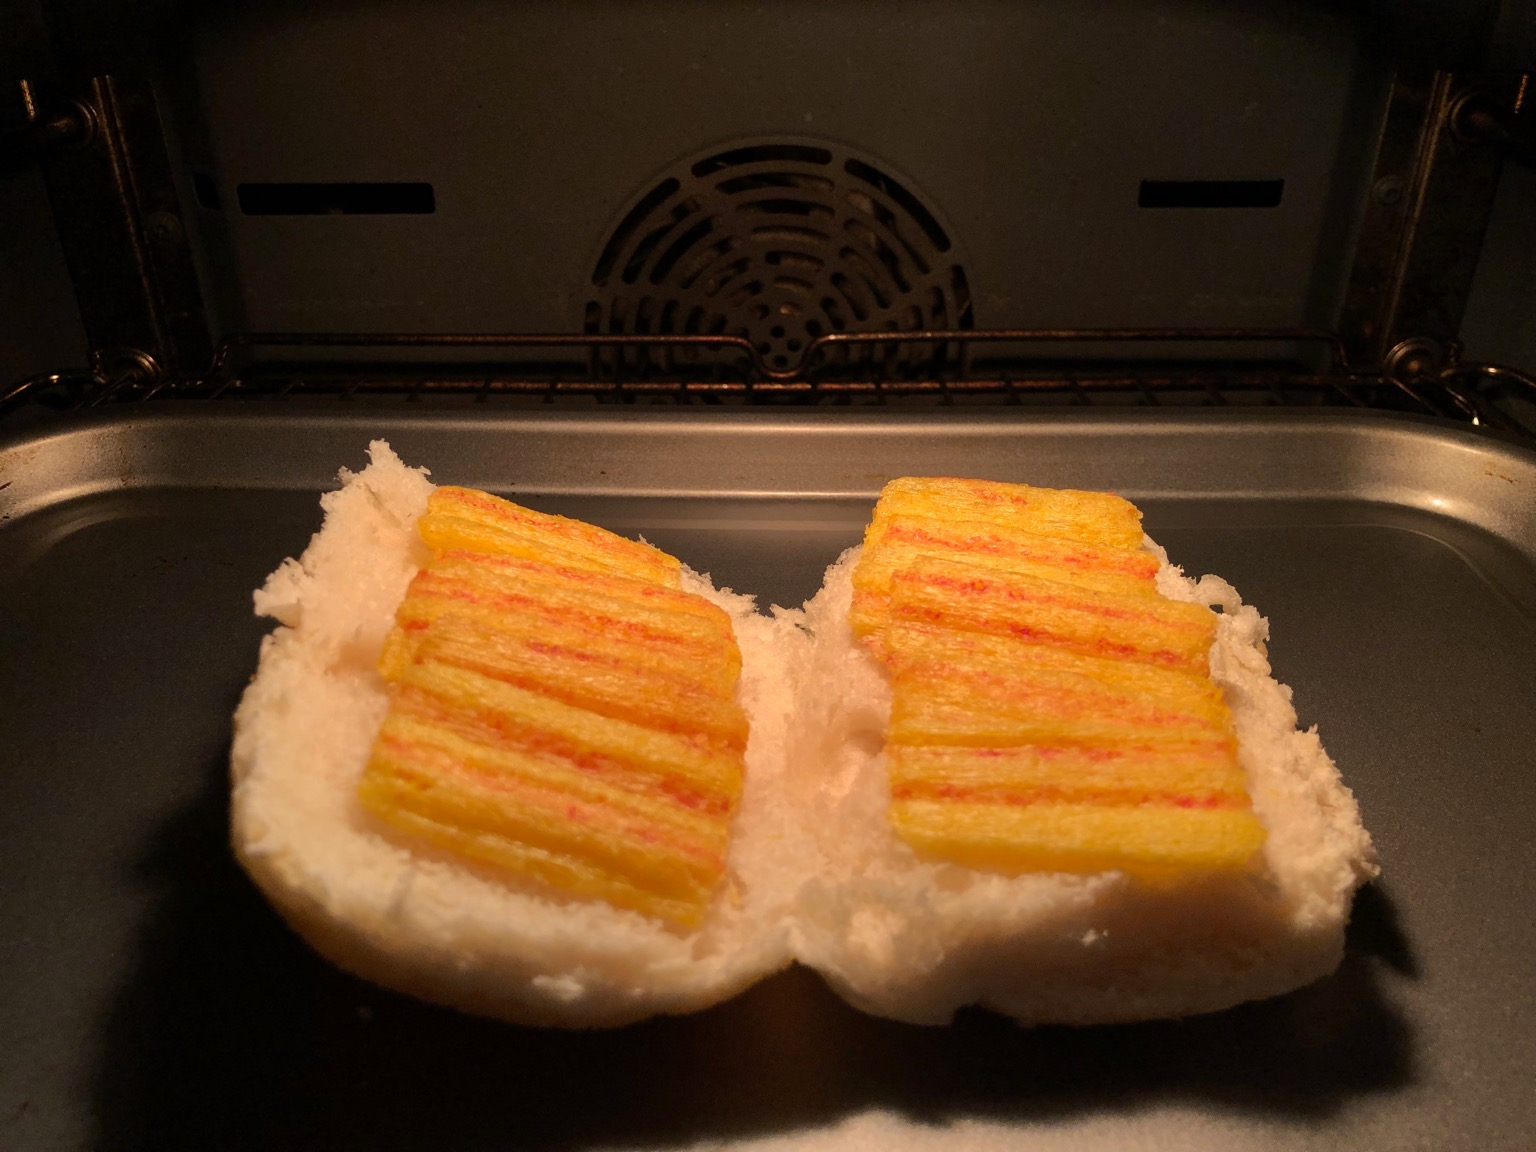 Frazzles on an open white roll in an oven